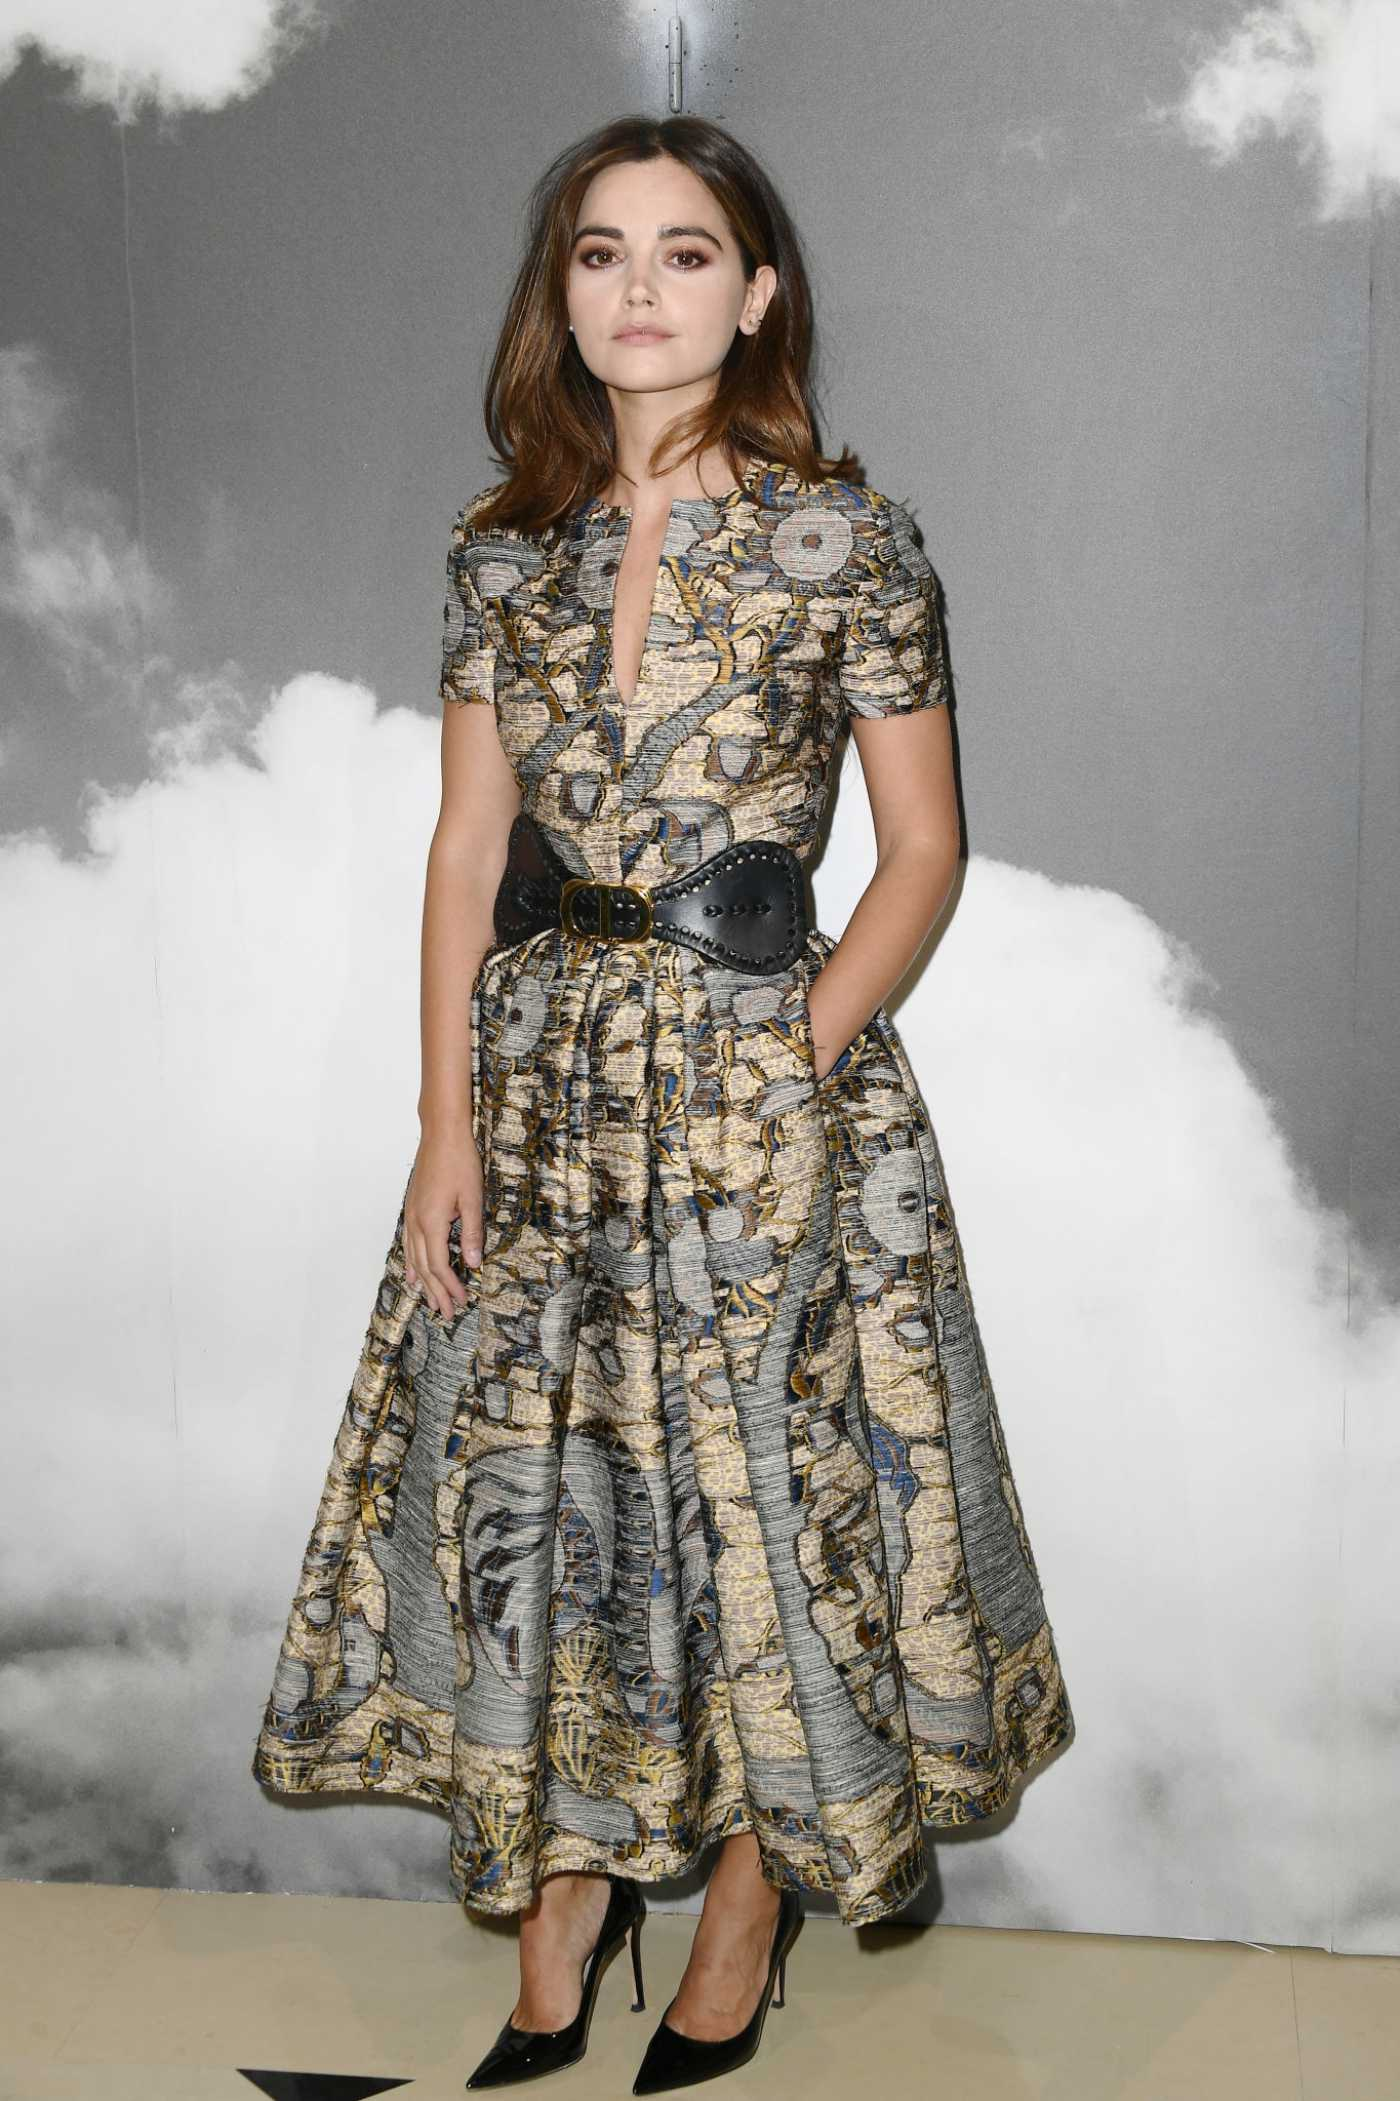 Jenna Coleman Attends the Dior Show During 2019 Paris Fashion Week in Paris 07/01/2019